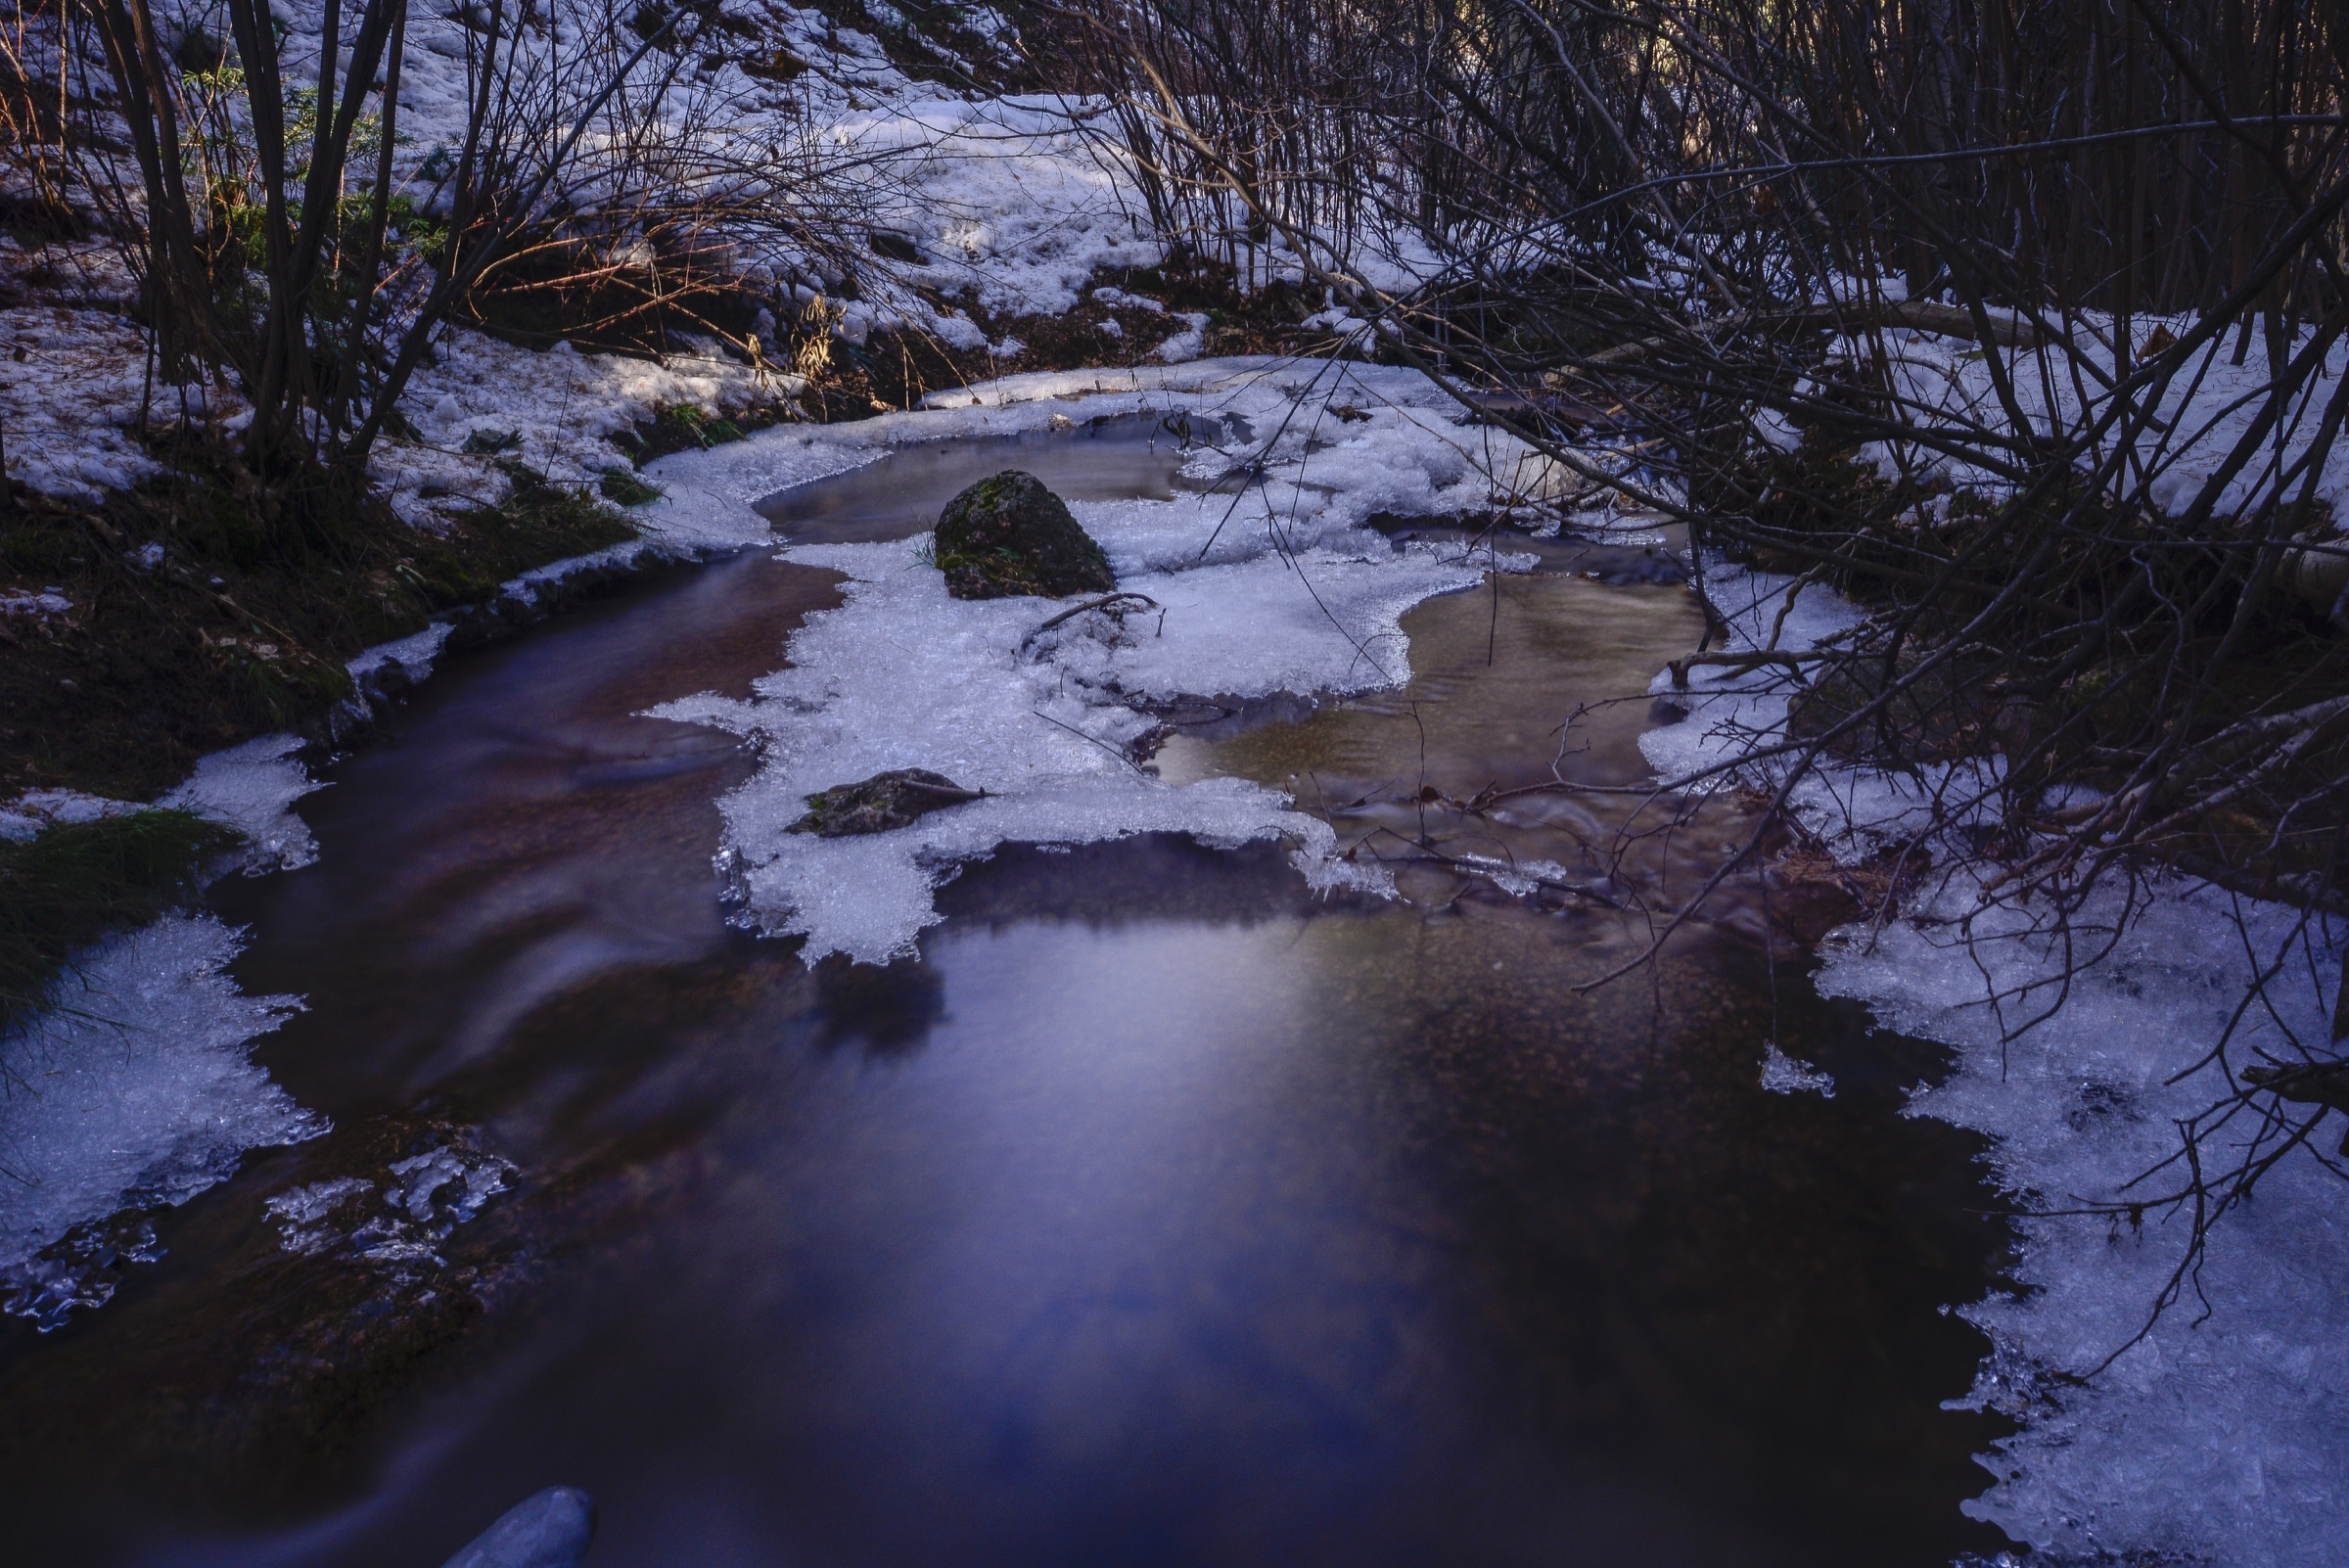 Bear Creek, an isolated stream on Pike's Peak's southern slope, home to the last remaining wild population of true greenback cutthroat trout (<em>Oncorhynchus clarkii stomias</em>), is the starting point of the second round of efforts to restore the subspecies to its former range. Photograph by Lindsay Fendt